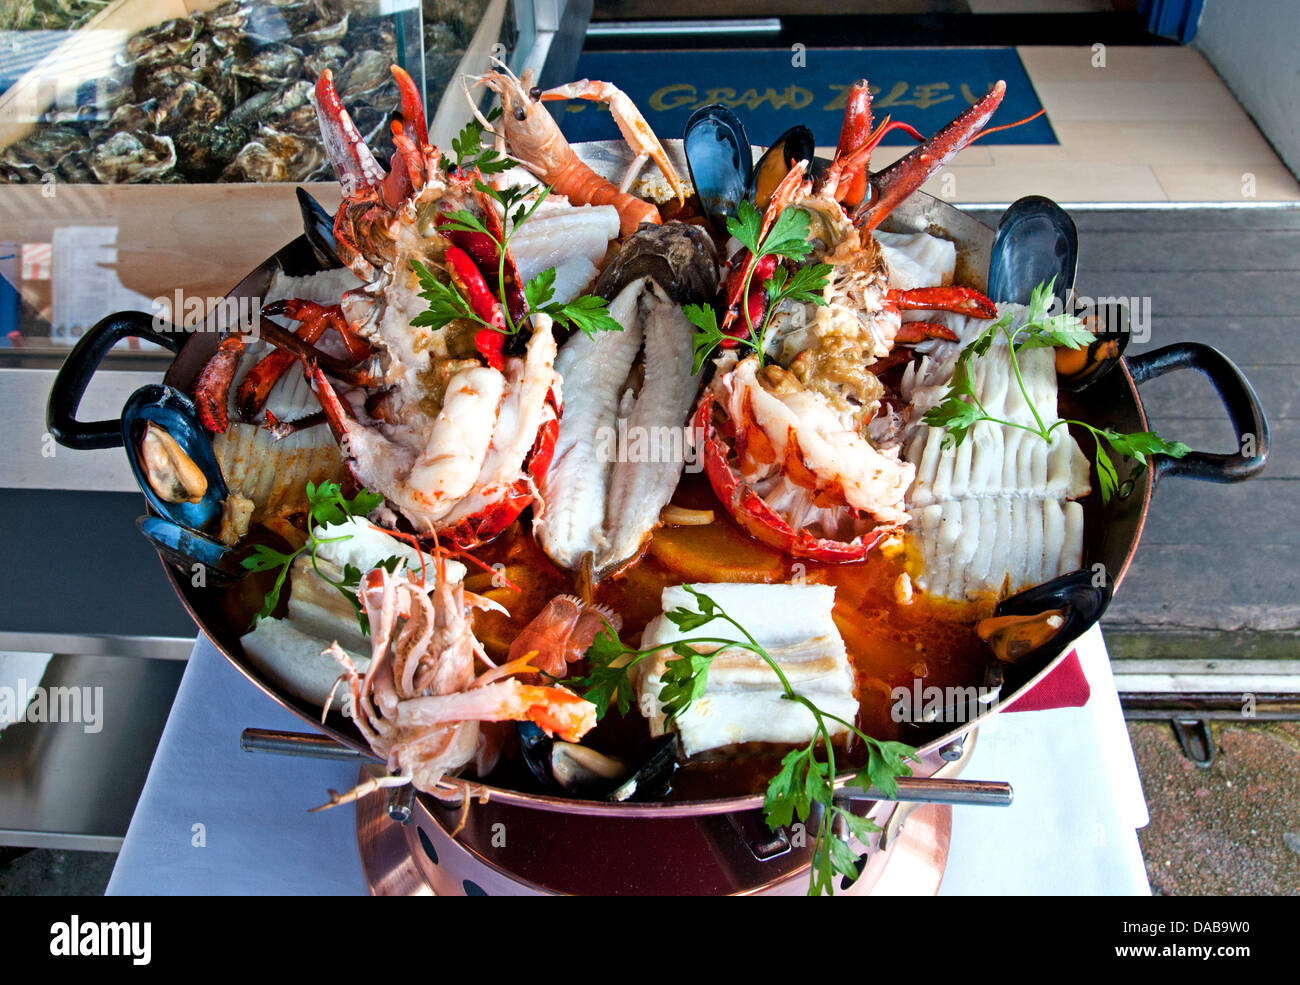 Bouillabaisse Provençal fish stew soup originating from the port city of Marseille. - Stock Image